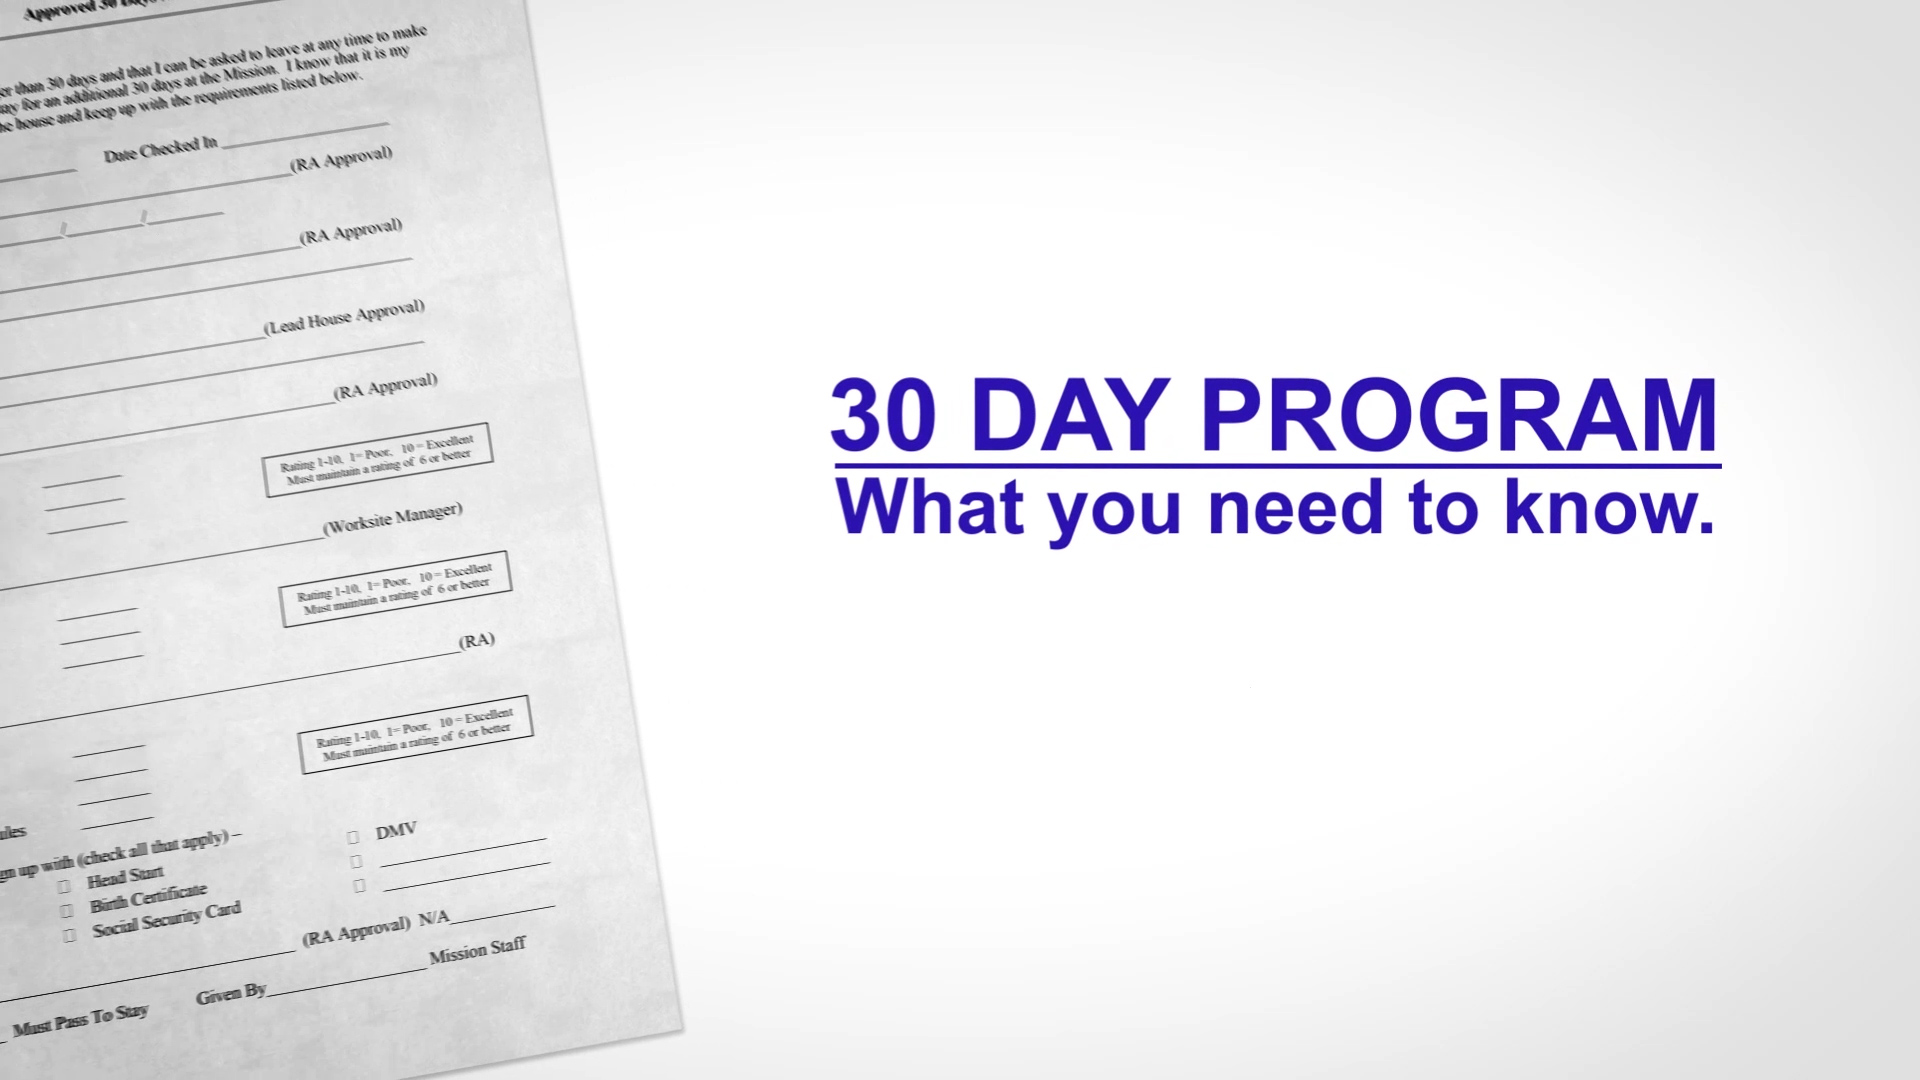 How the 30 Day Program Works